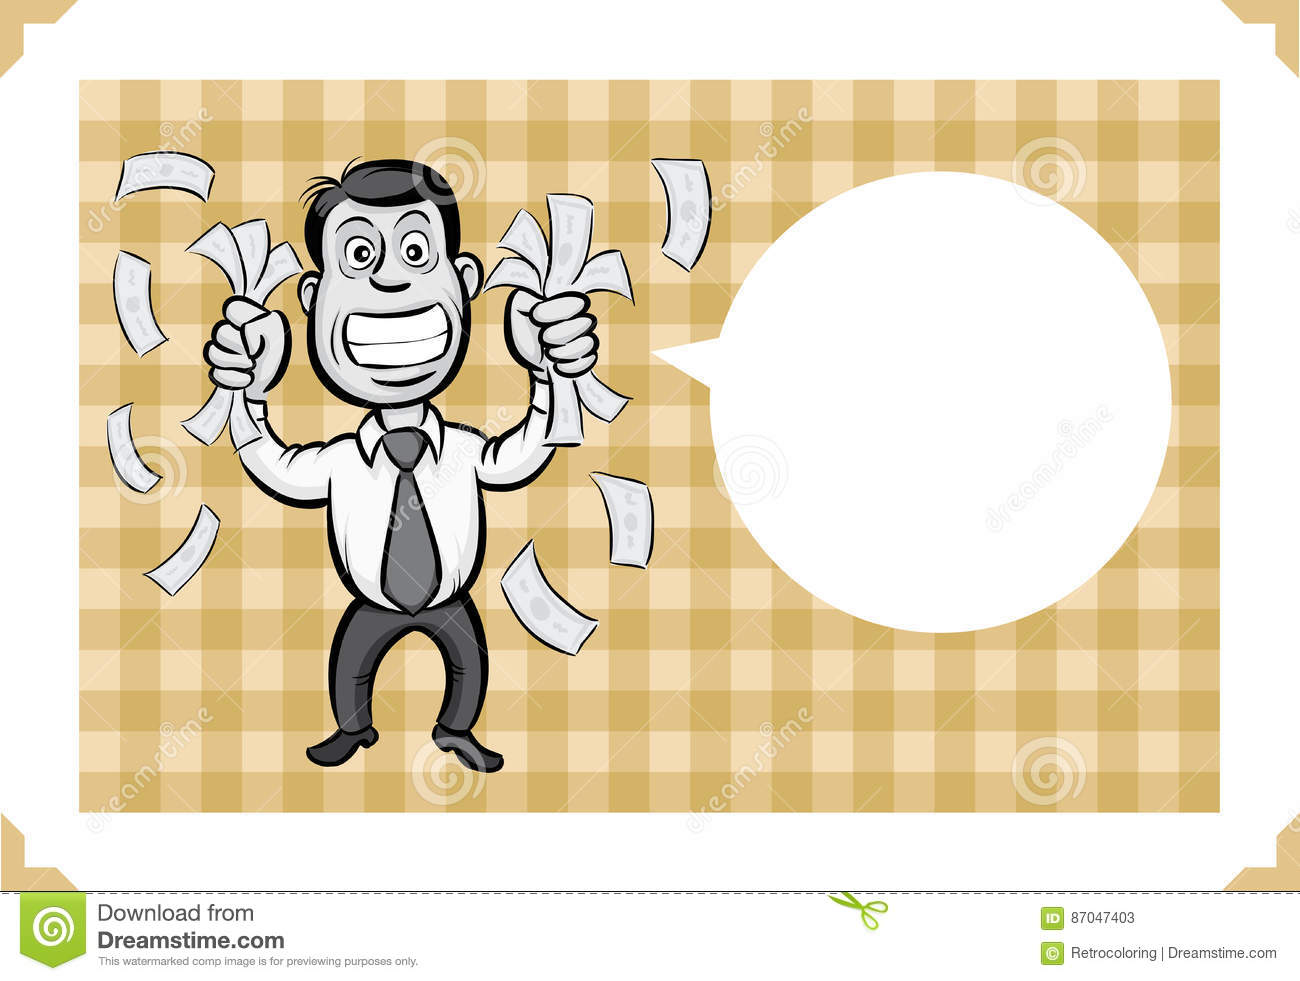 Greeting card with businessman shaking money sarcastic meme layered vector illustration personalize it with your own humorous message